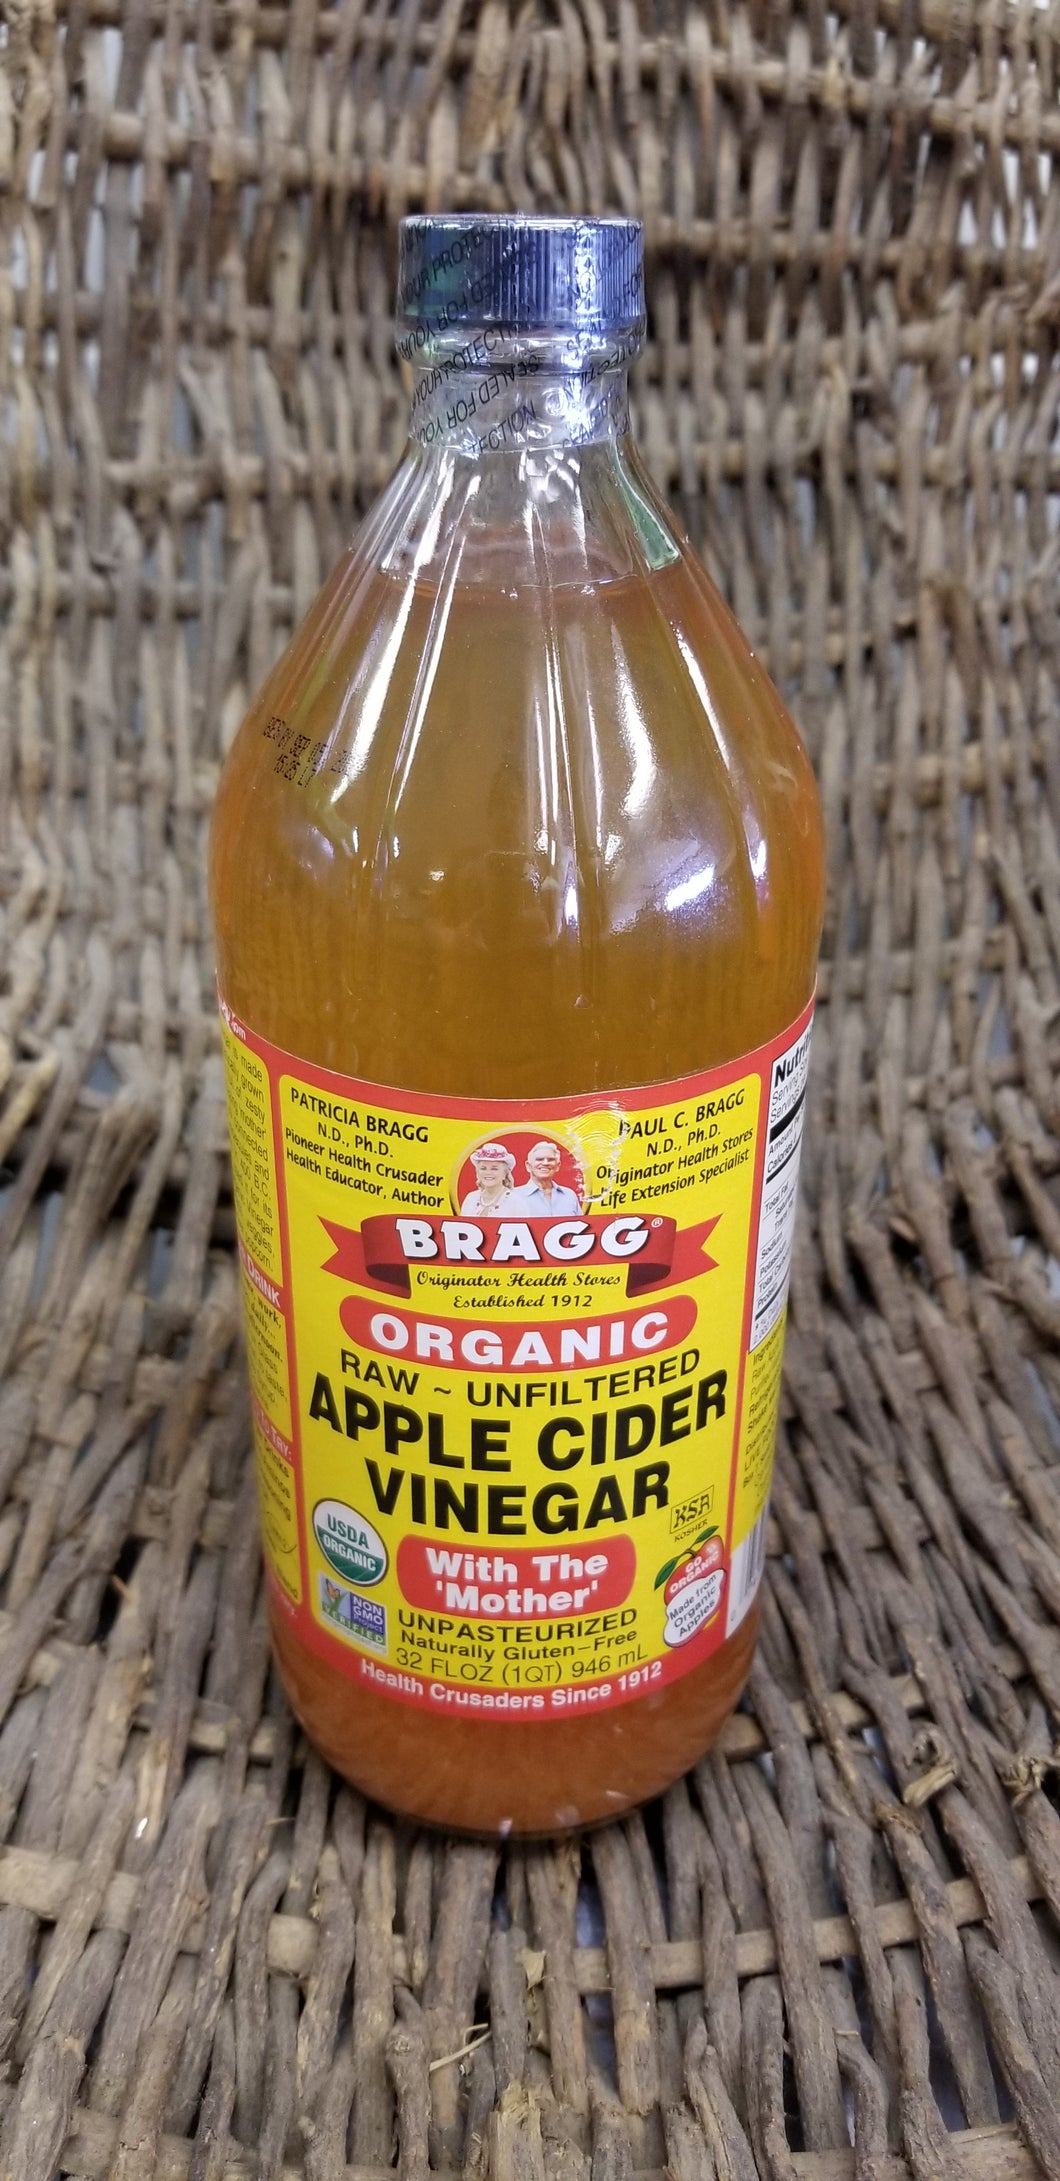 Bragg Organic Apple Cider Vinegar (32 fl oz)